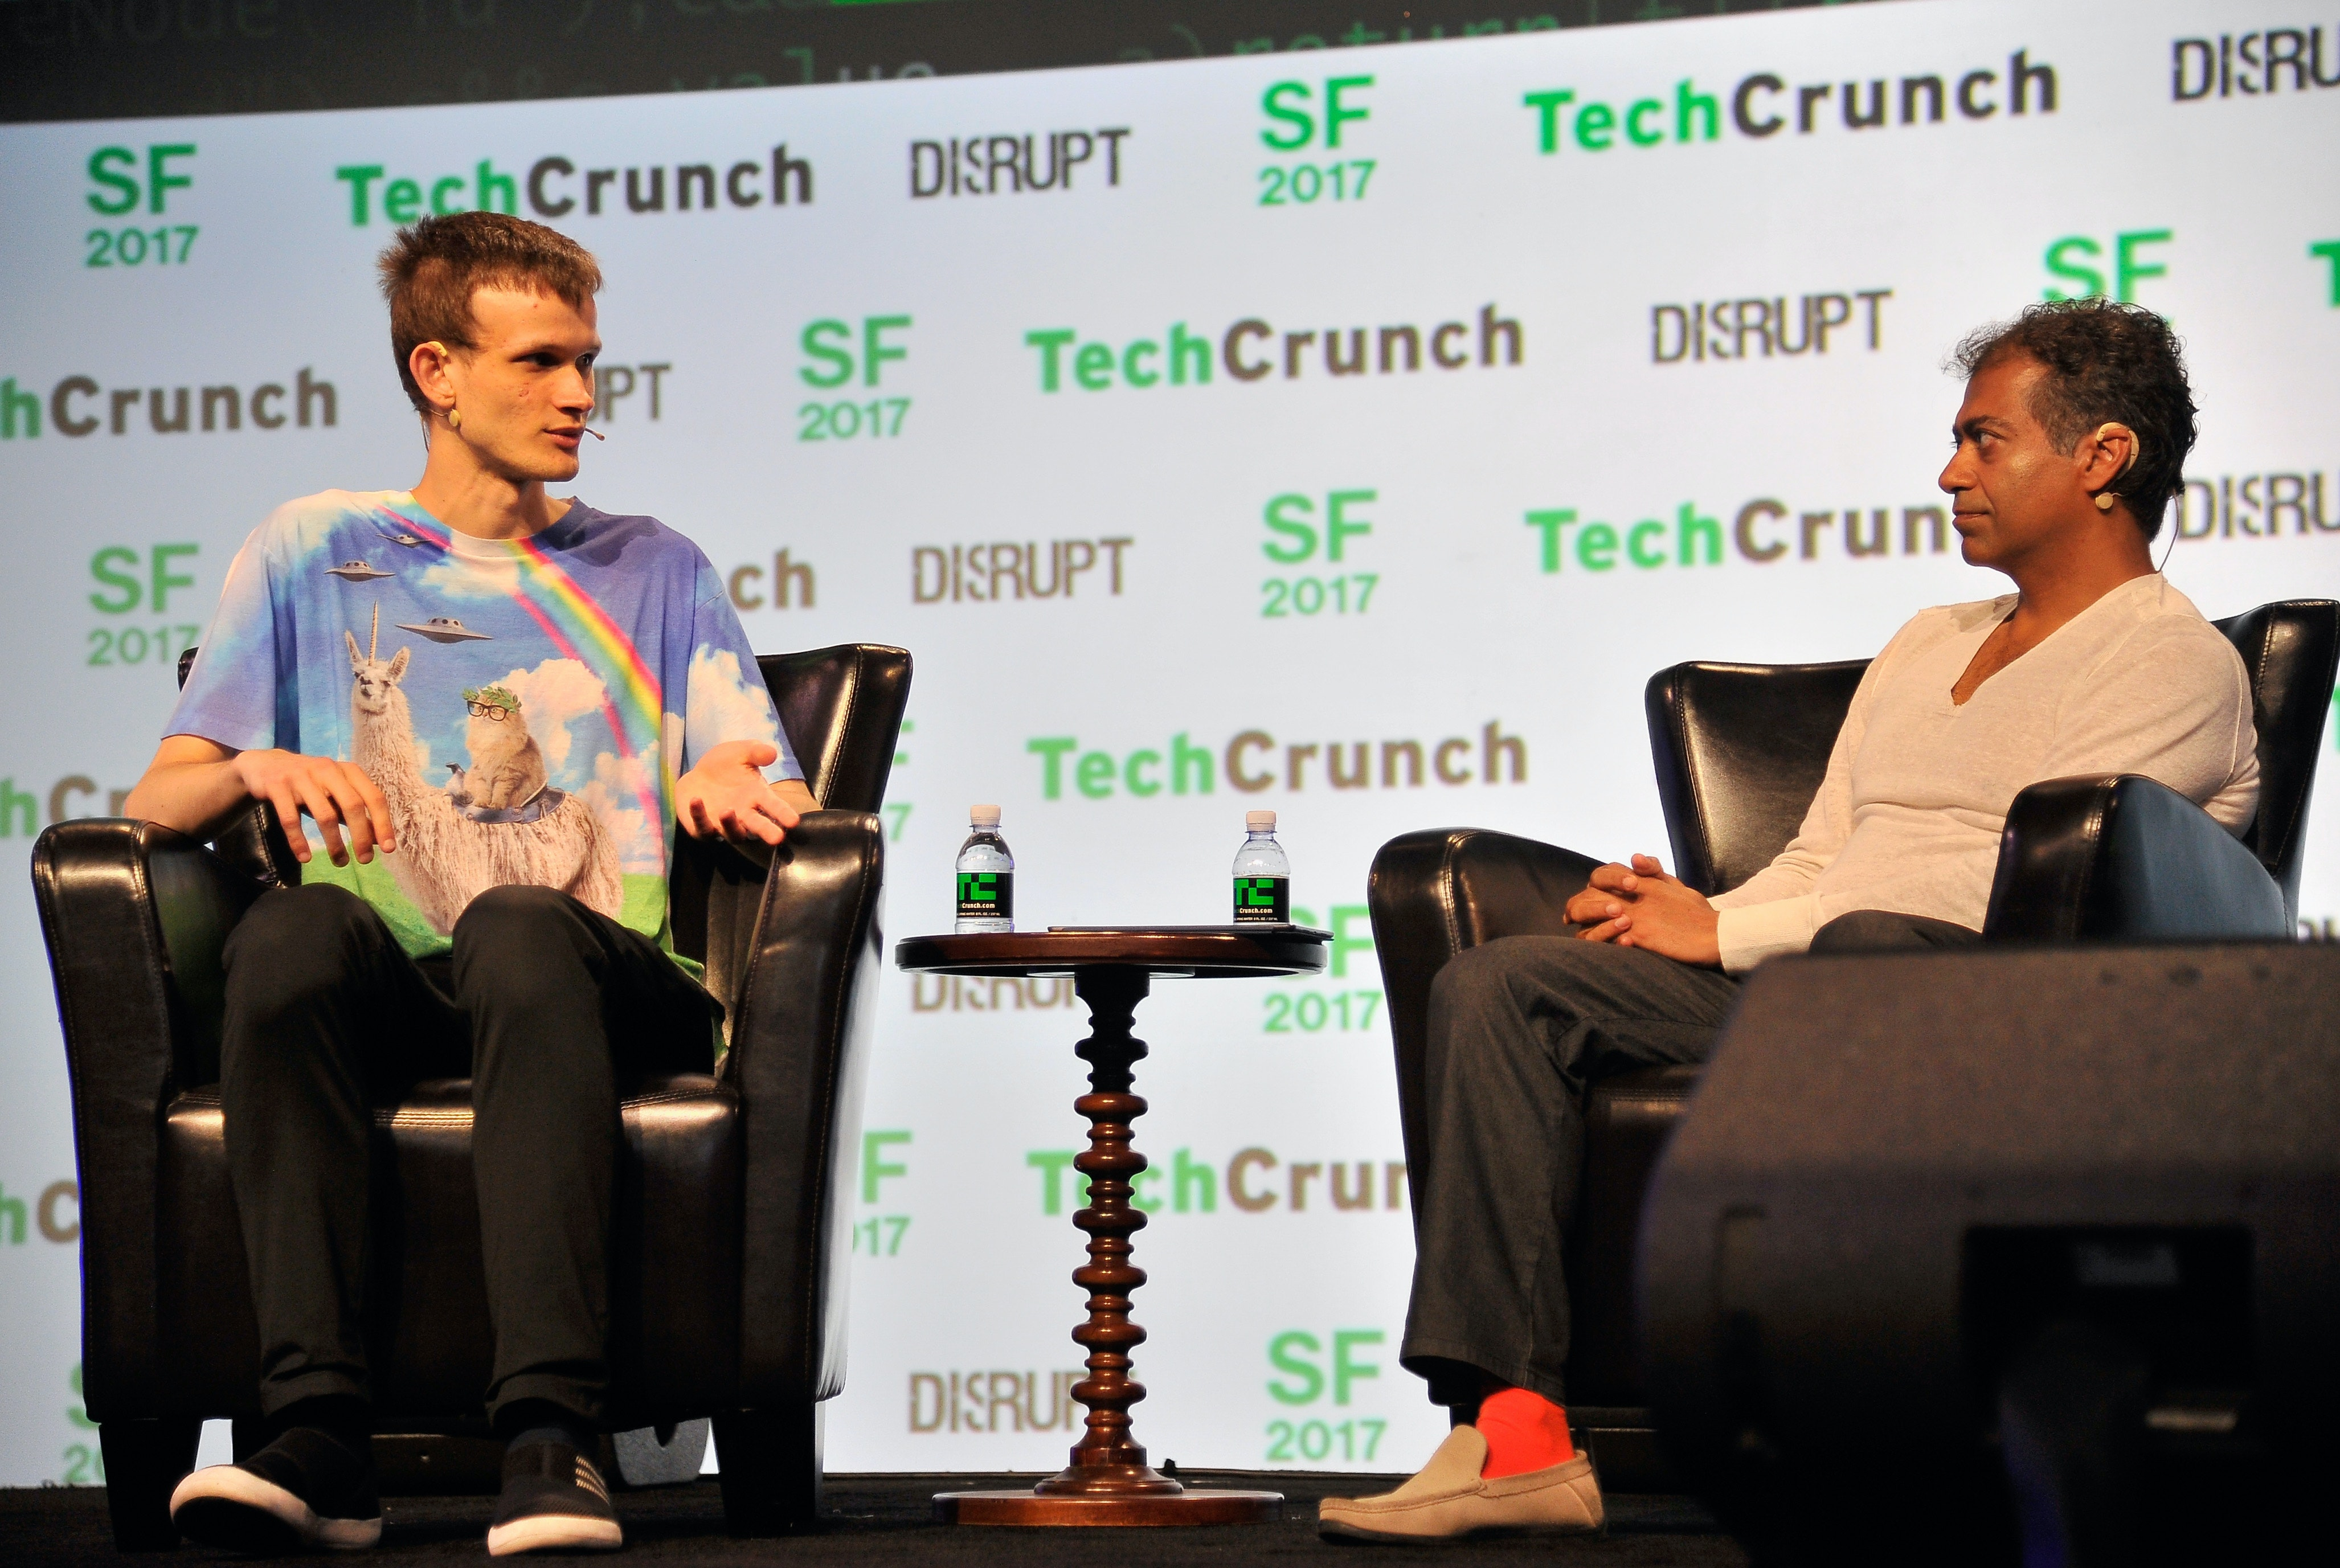 san francisco ca september 18 ethereum founder and inventor vitalik buterin l and angellist cjpegrectu003d175036642753u0026fmu003dpngu0026wu003d1200